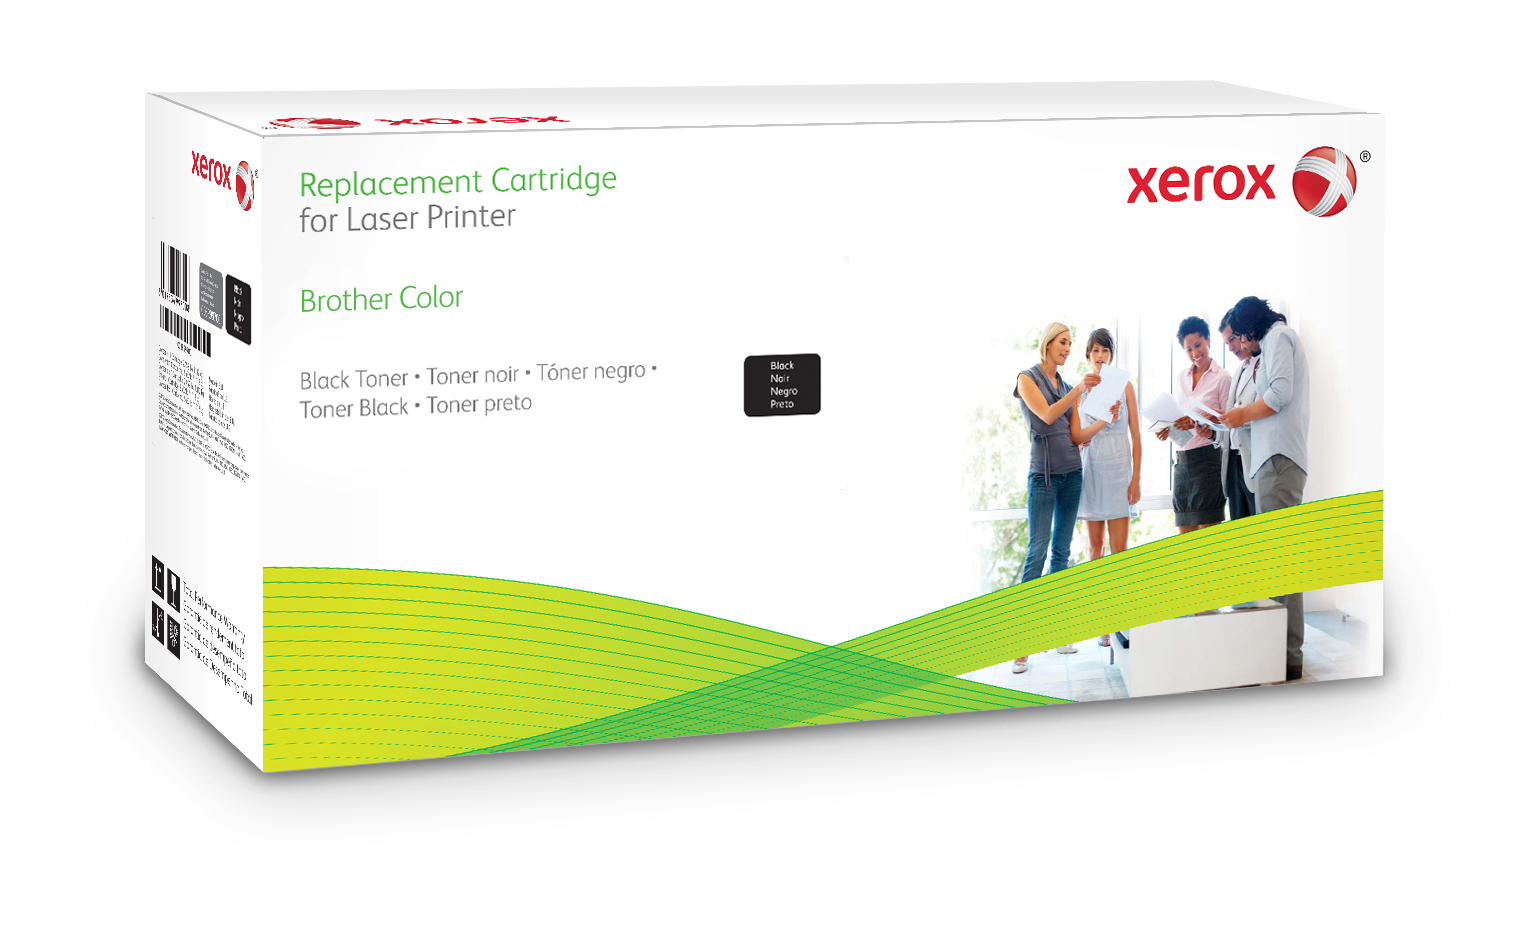 Xerox - Compatible Supplies      Brother Hl-5440/5450/5470           Generic Toner                       006r03194